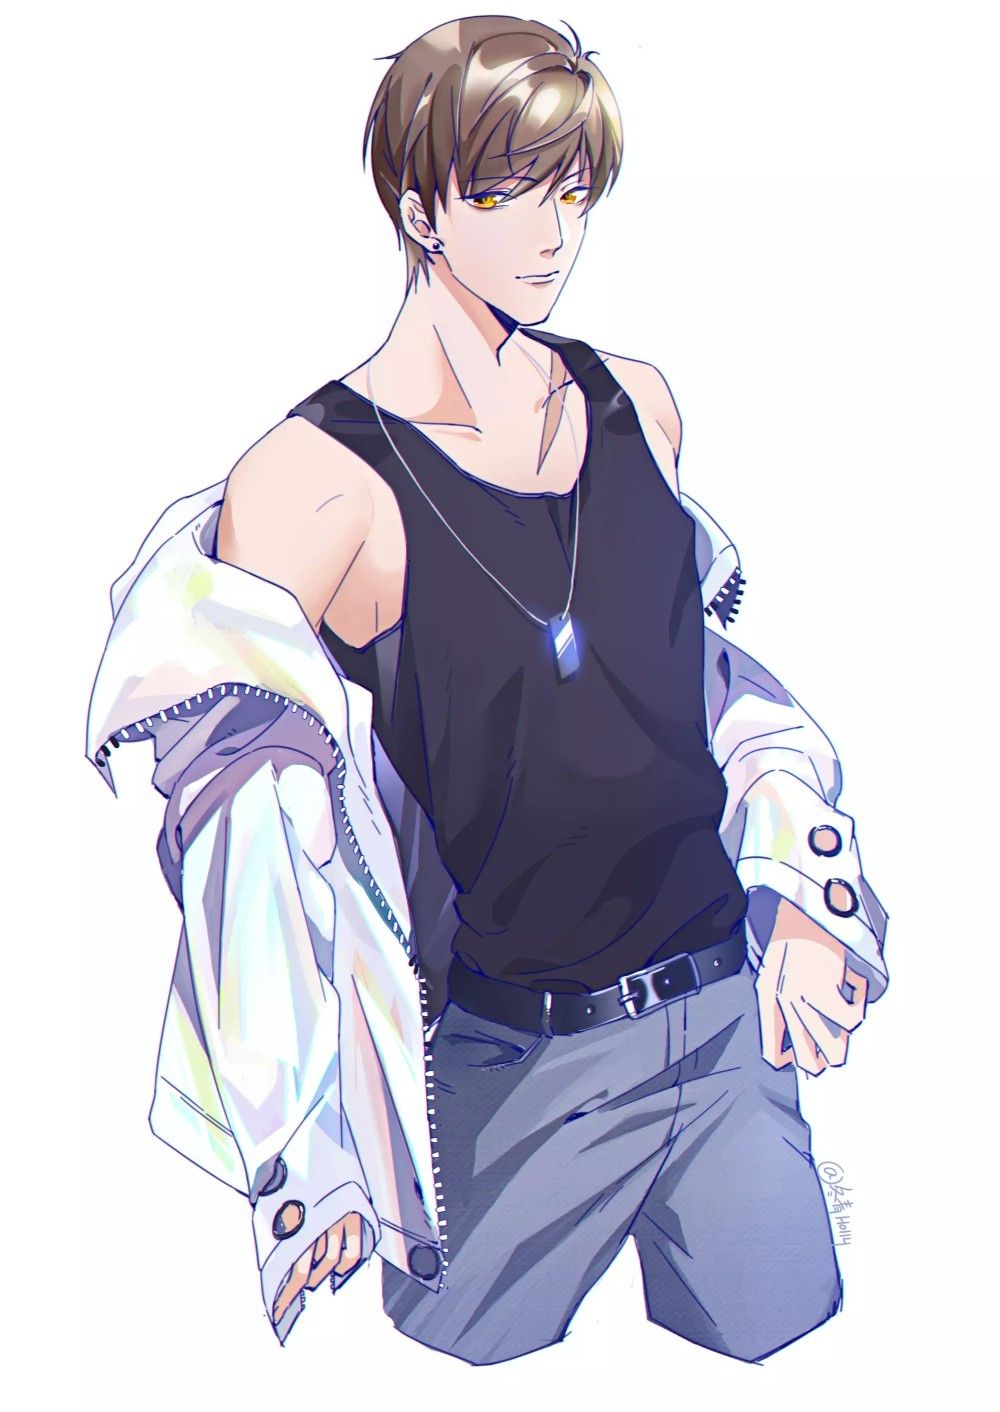 Art by 冬青Holly Anime boy, Handsome anime, Handsome anime